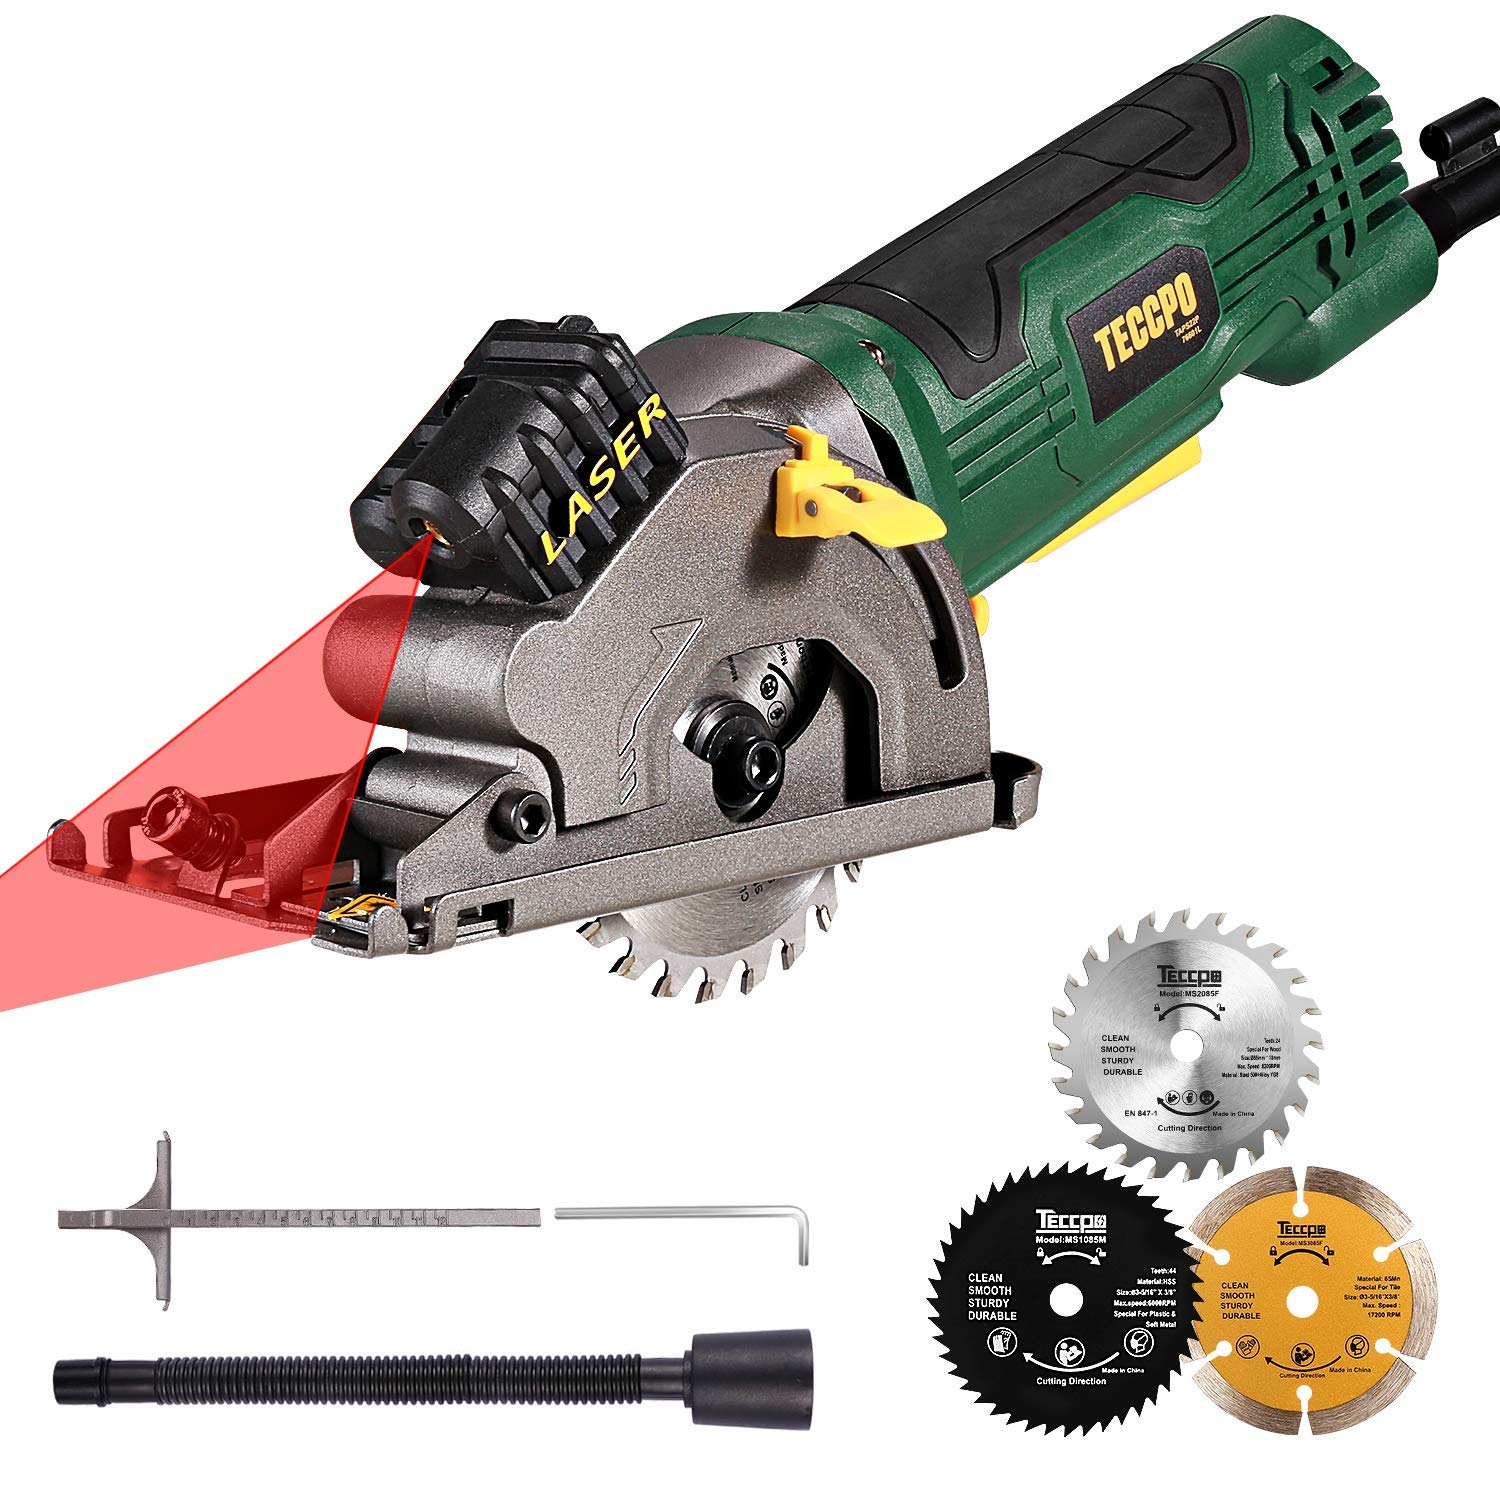 TECCPO Circular Saw, 3500RPM Compact Saw with Laser, 3 Saw Blades (22T/44T/Diamond), Scale Ruler and 4Amp Pure Copper Motor, Suitable for Wood, Tile, Aluminum and Plastic Cuts - TAPS22P